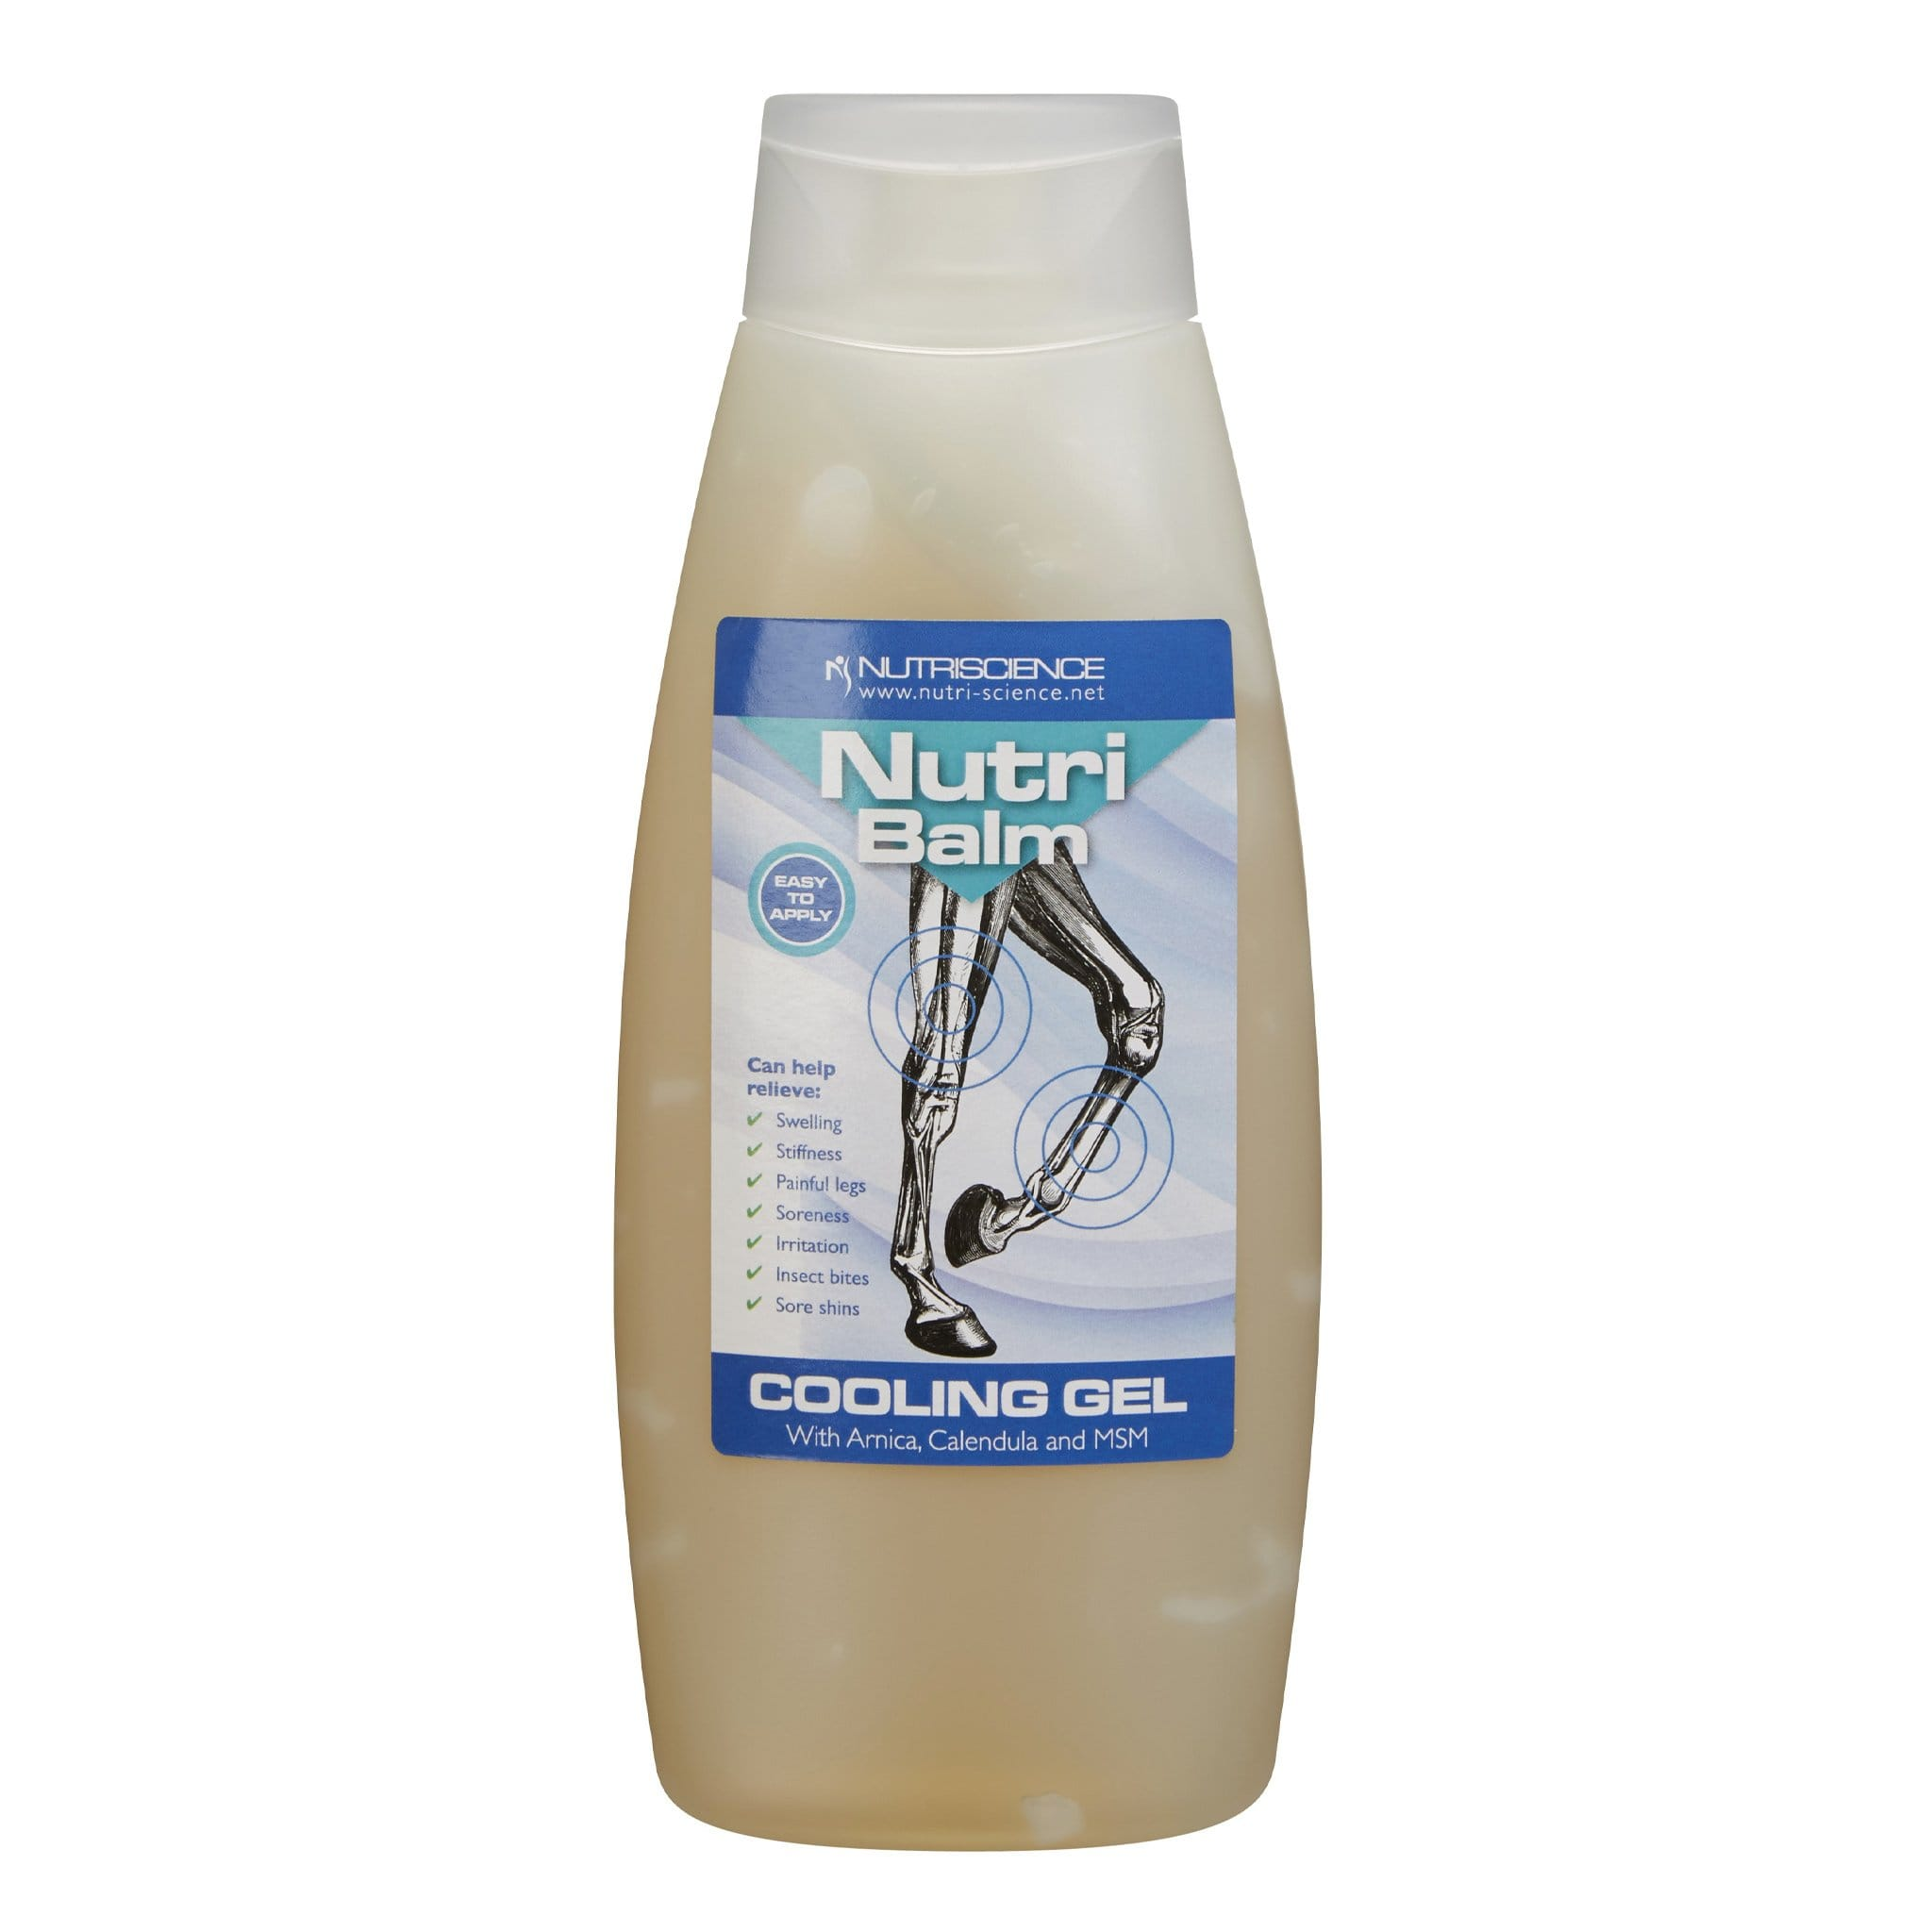 NutriScience NutriBalm Cooling Gel 400 Gram 9360.